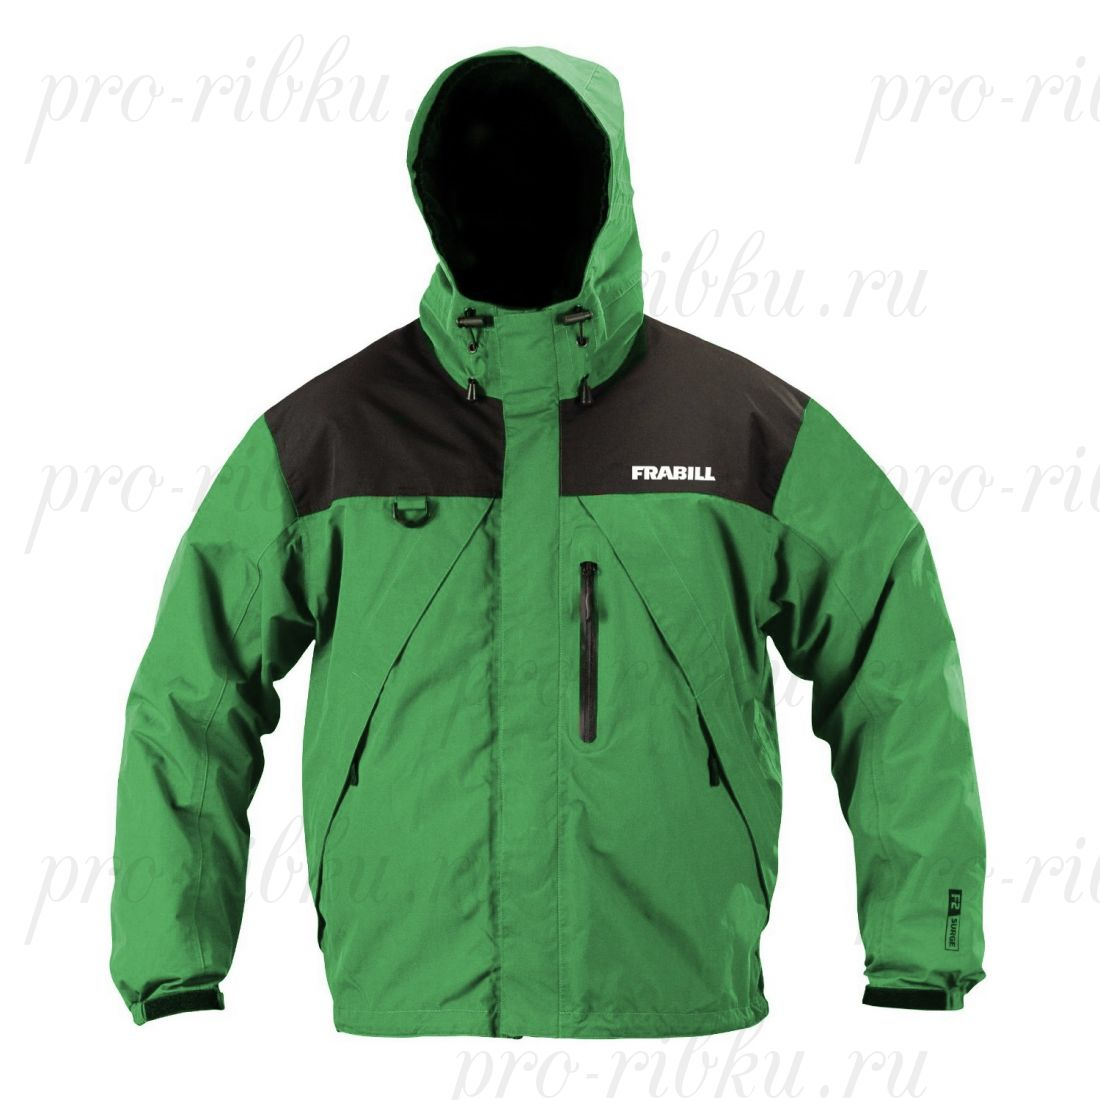 Куртка штормовая Frabill F2 Surge RainSuit Jacket Green размер M